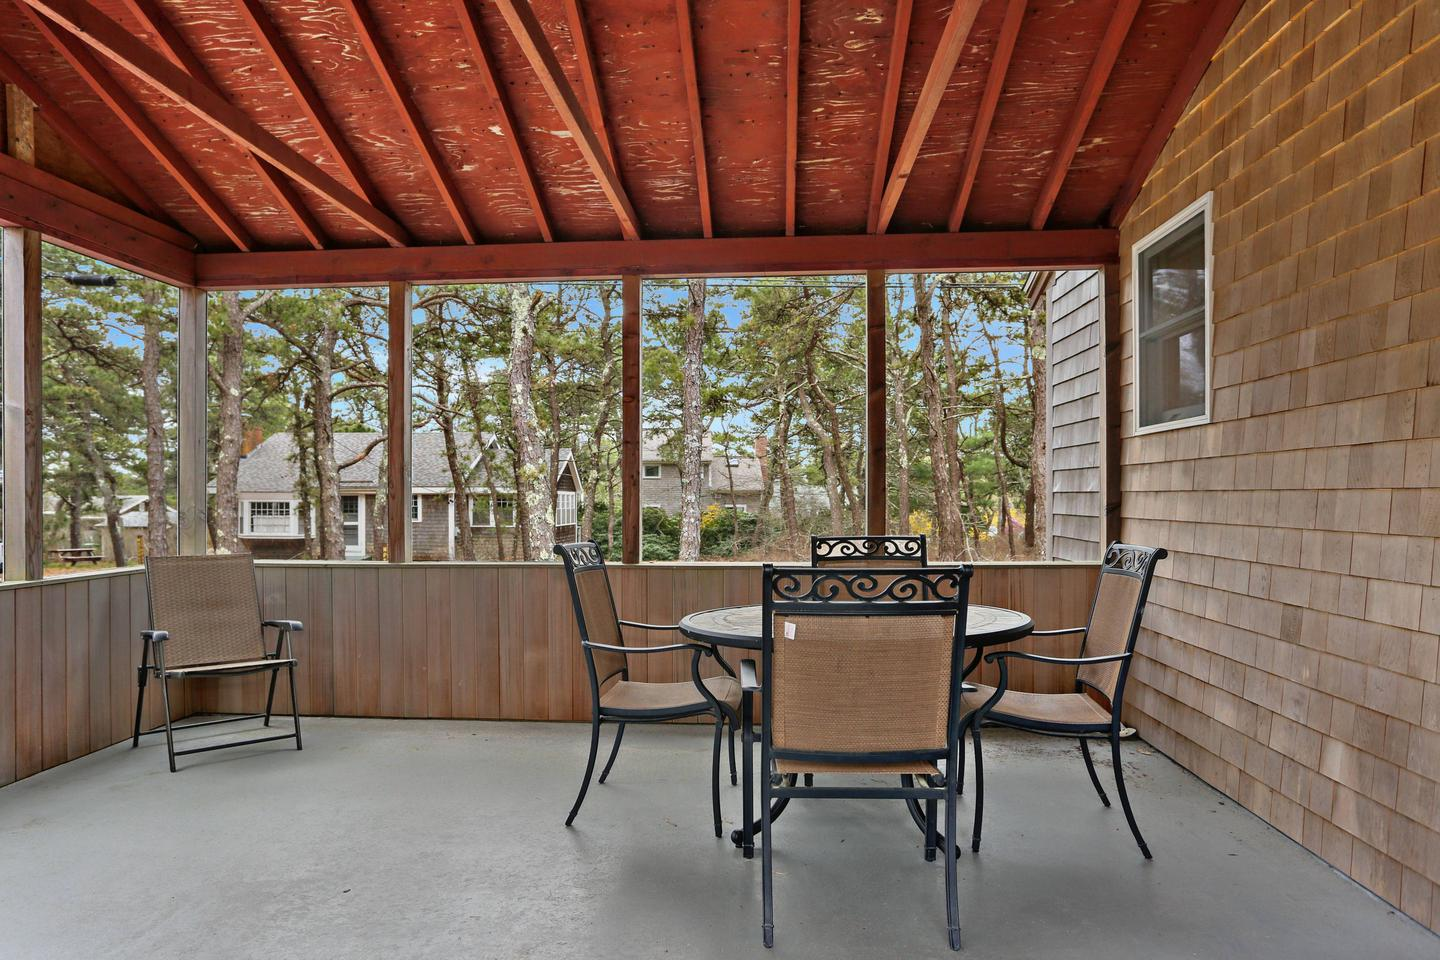 A screened porch is always a popular place for relaxing in the morning air